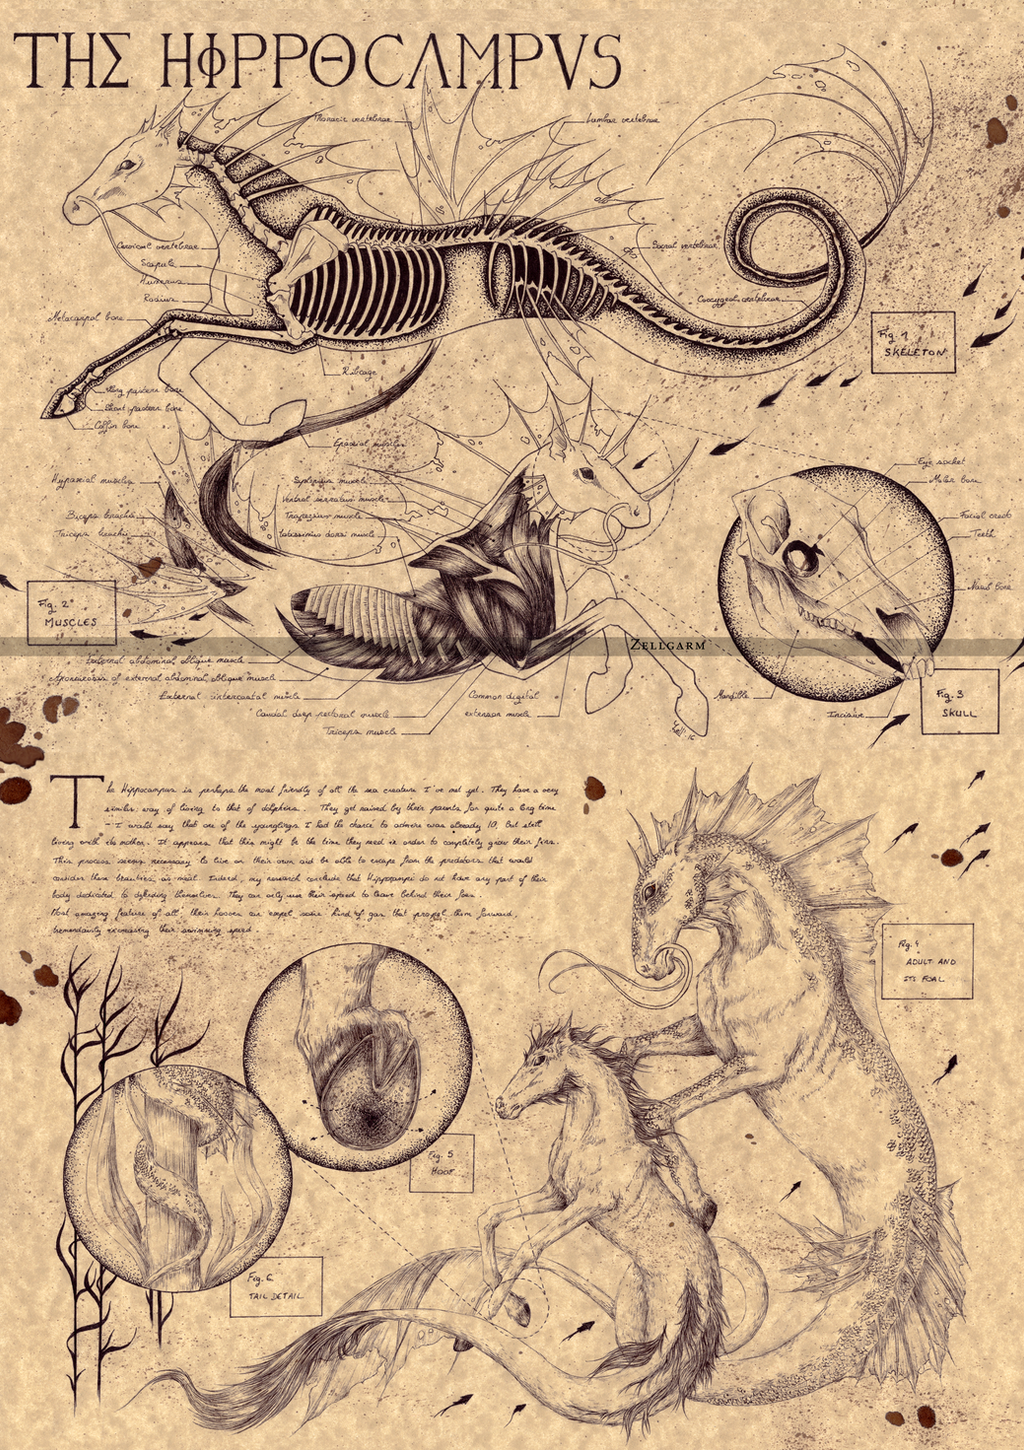 THE HIPPOCAMPUS by Zellgarm